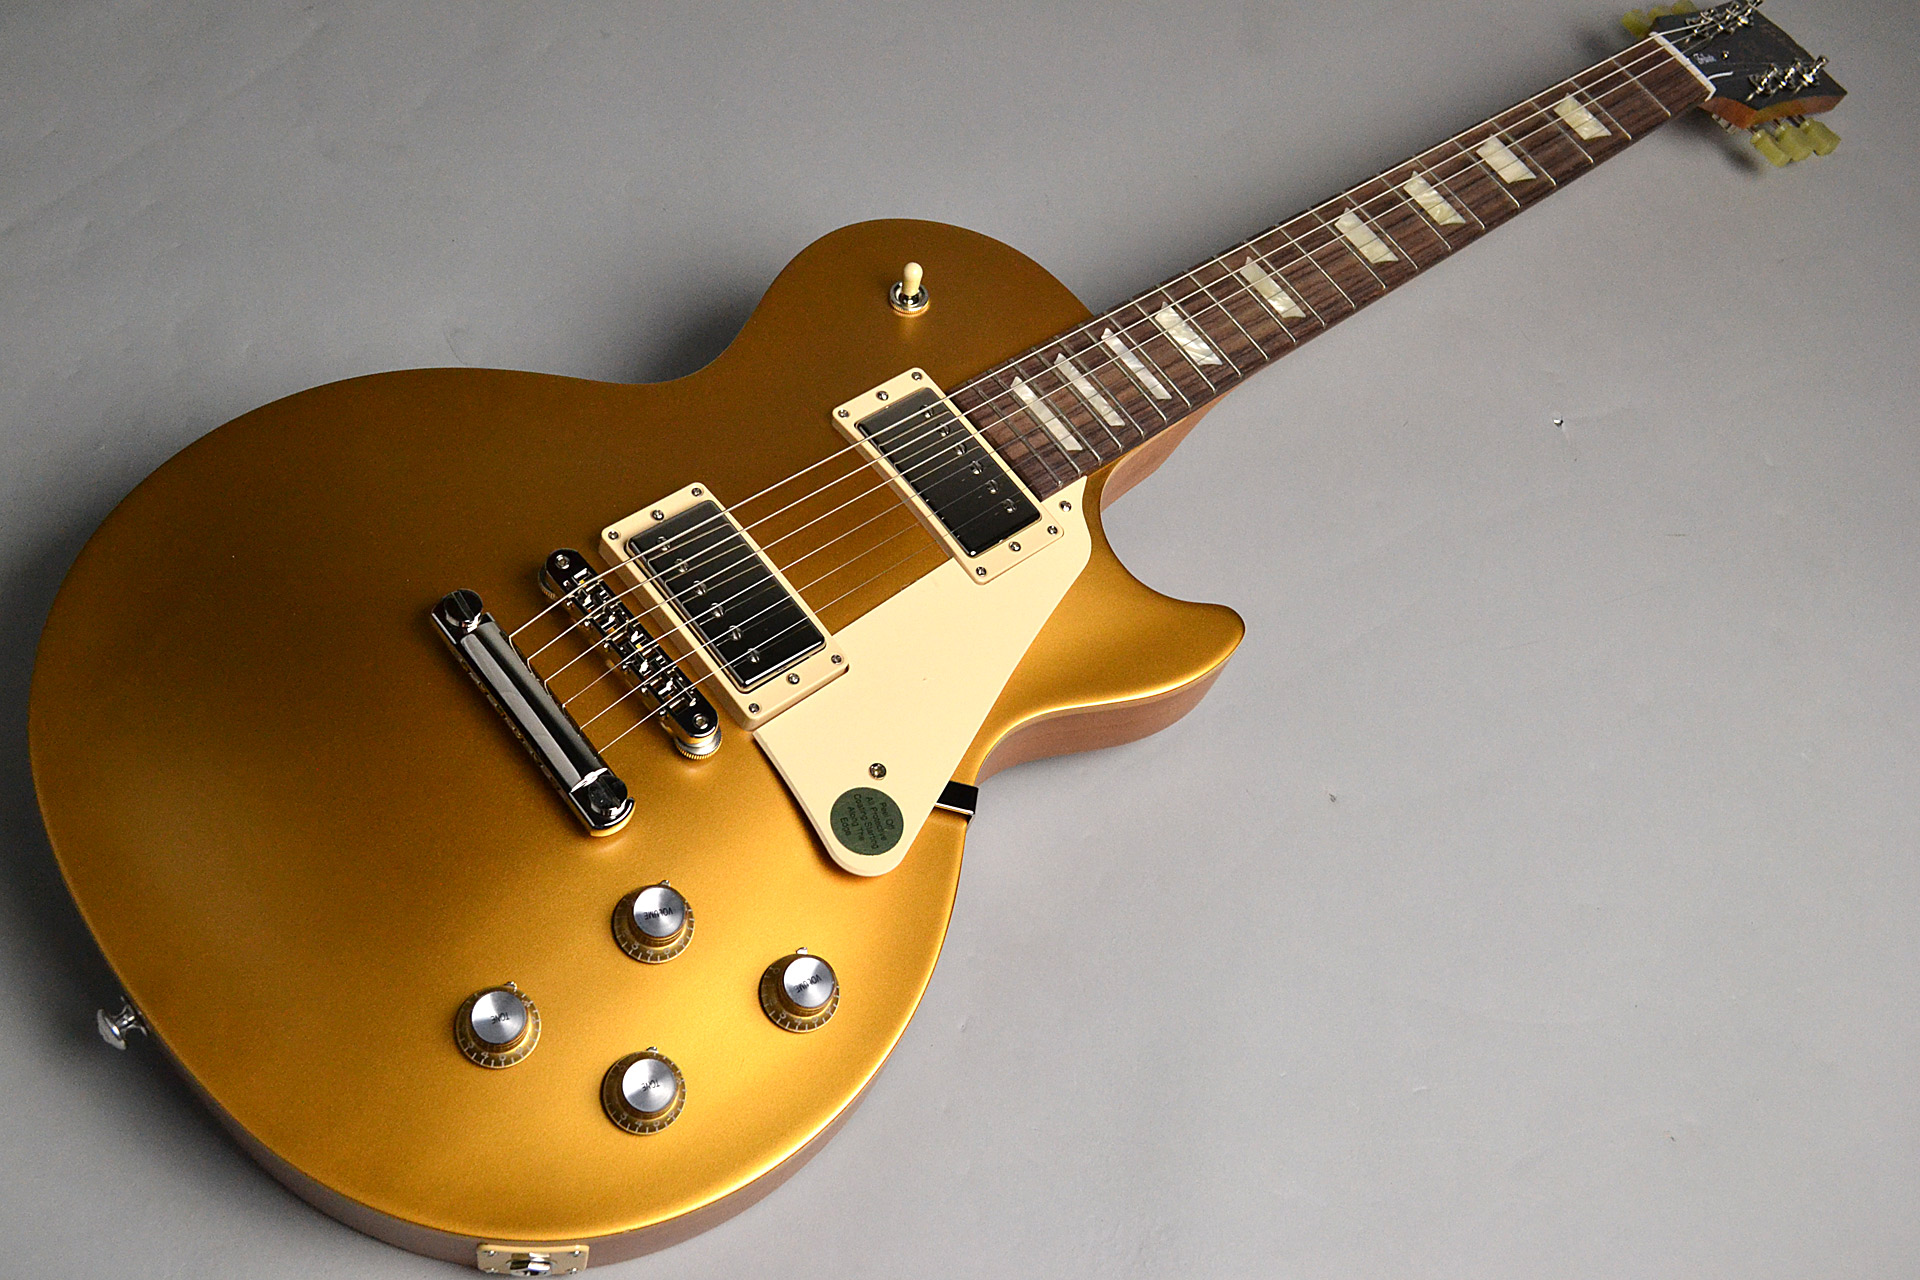 Les Paul Tribute 2018 Satin Gold Top